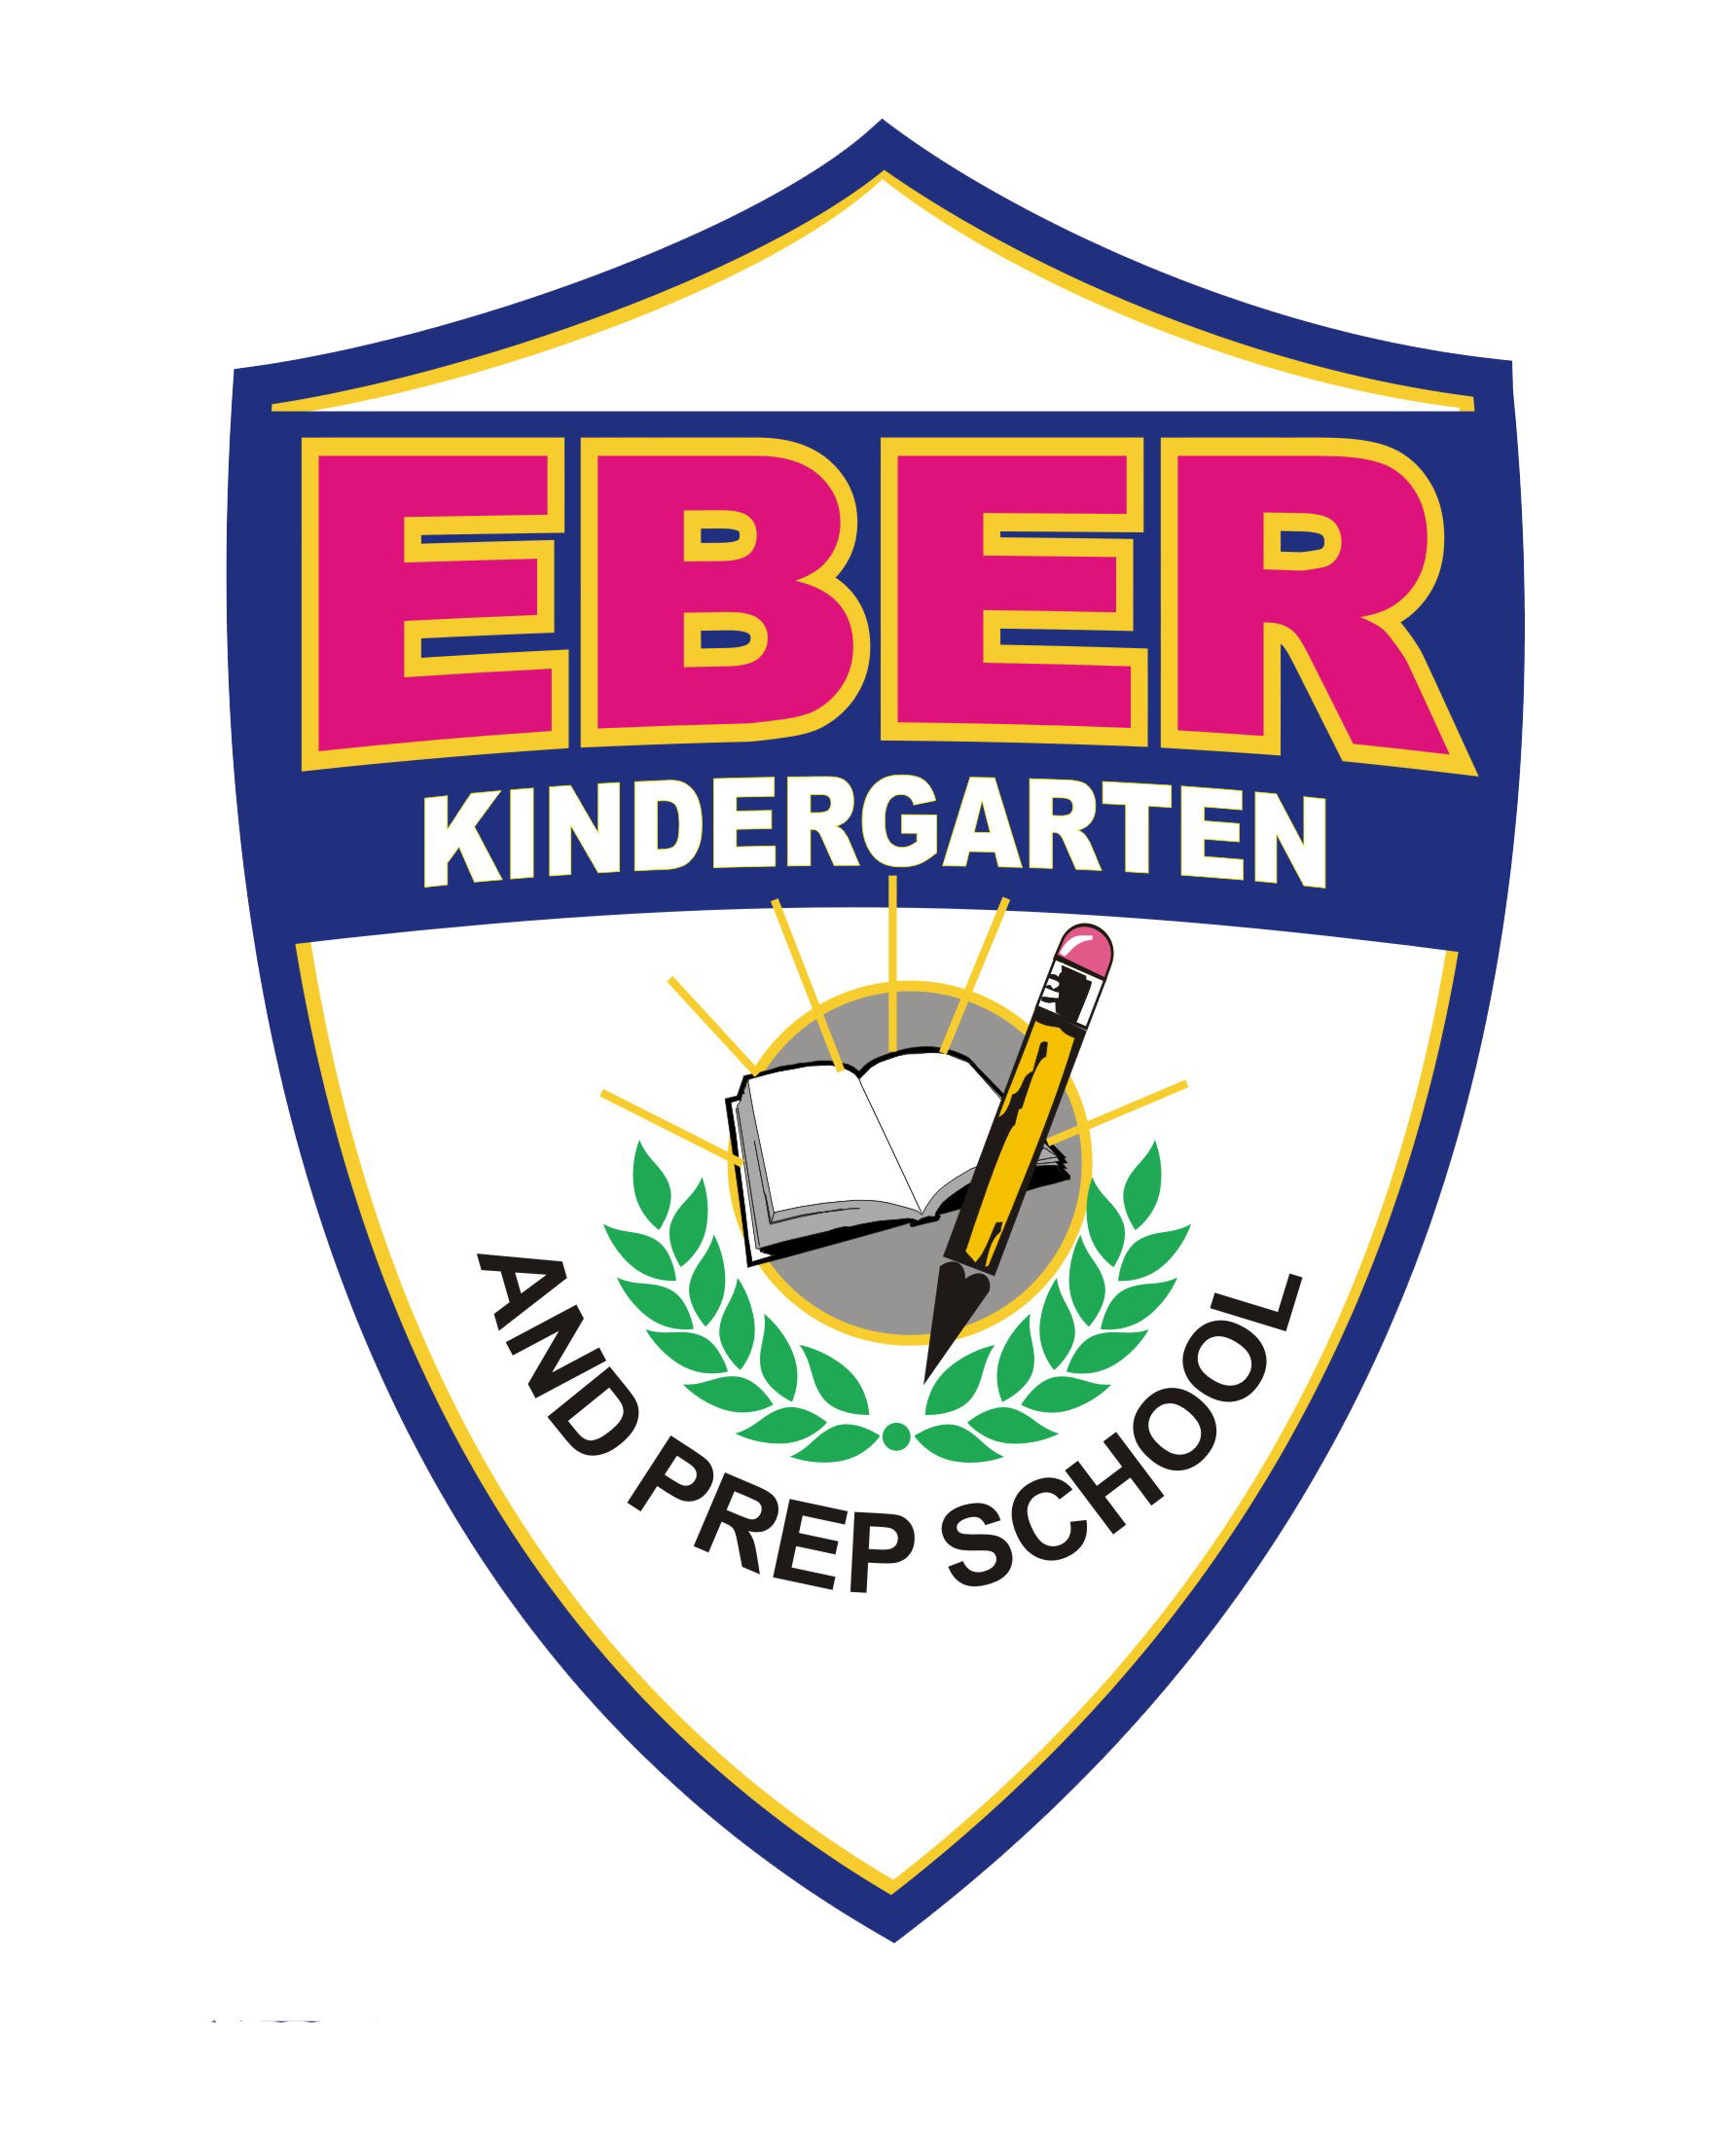 Eber Kindergarten & Preparatory School